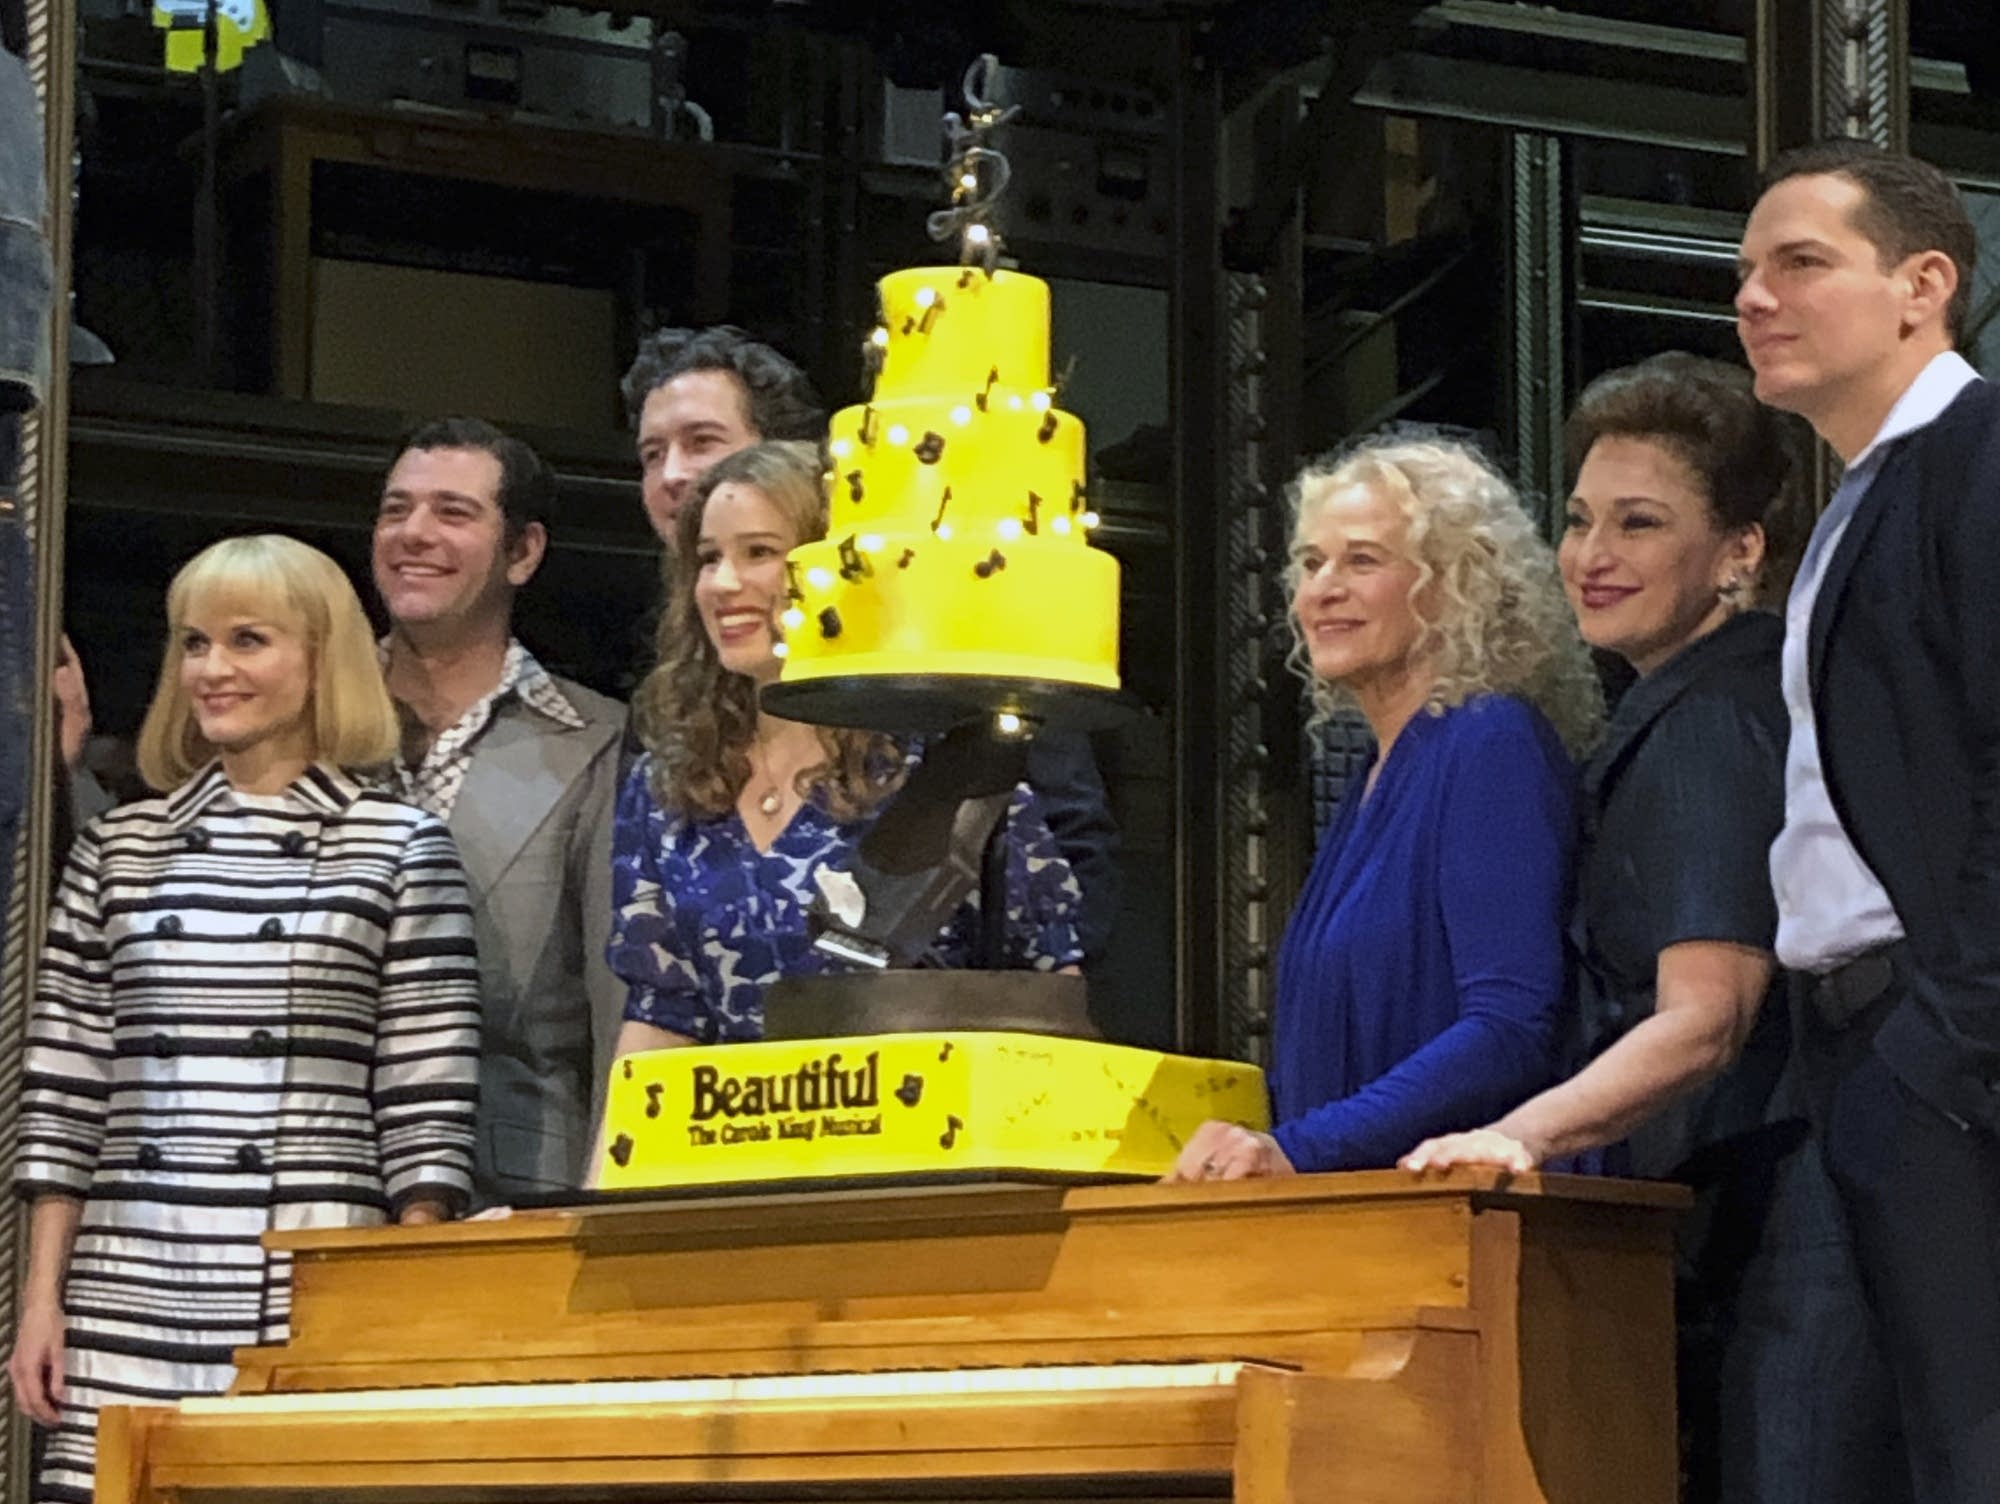 Carole King poses for photos with the cast of